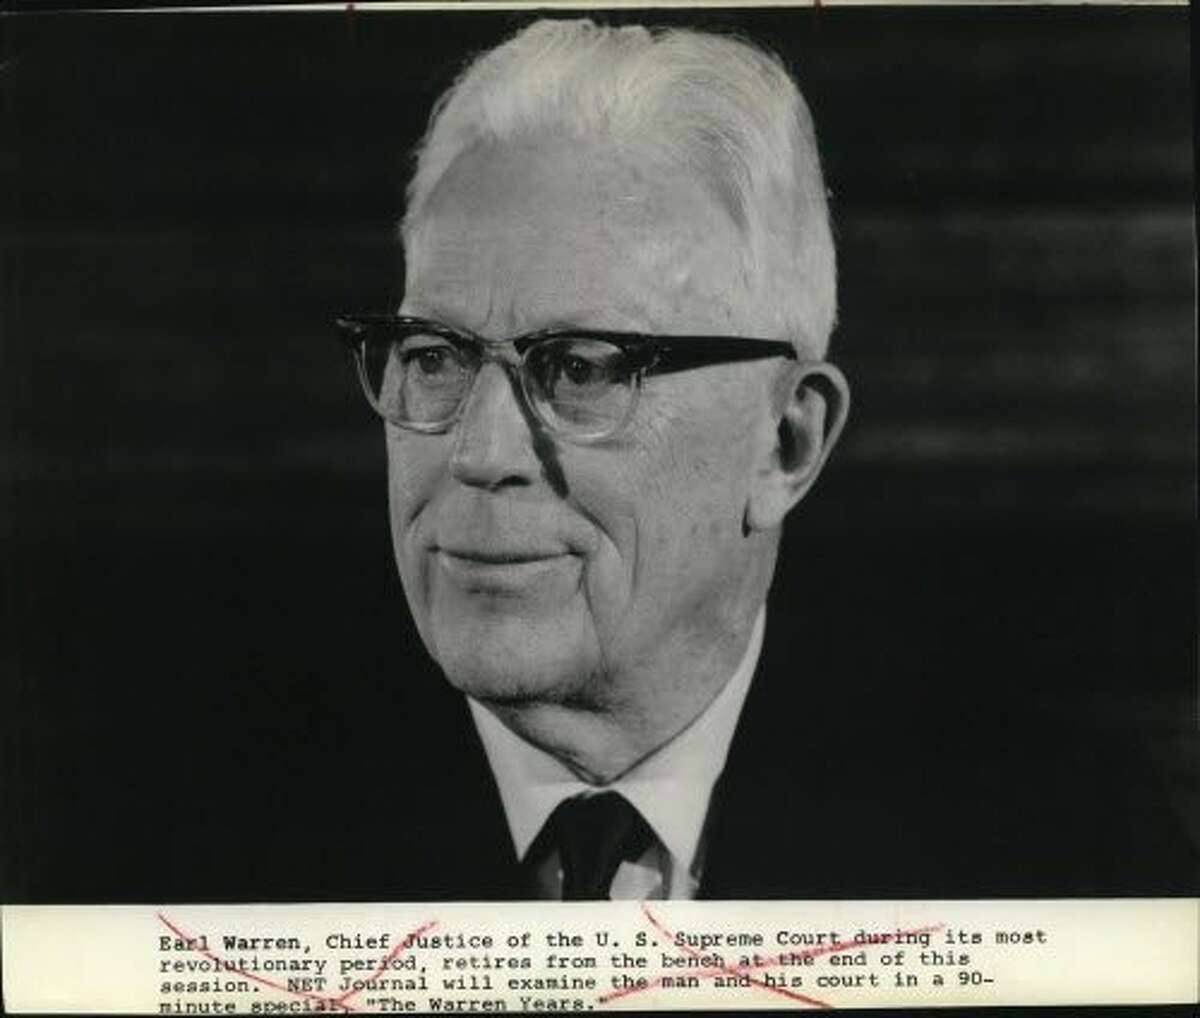 """Earl Warren, Chief Justice of the US Supreme Court during its most revolutionary period, retires from the bench at the end of this session. NET Journal will examine the man and his court in a 90-minute special, """"The Warren Years."""""""